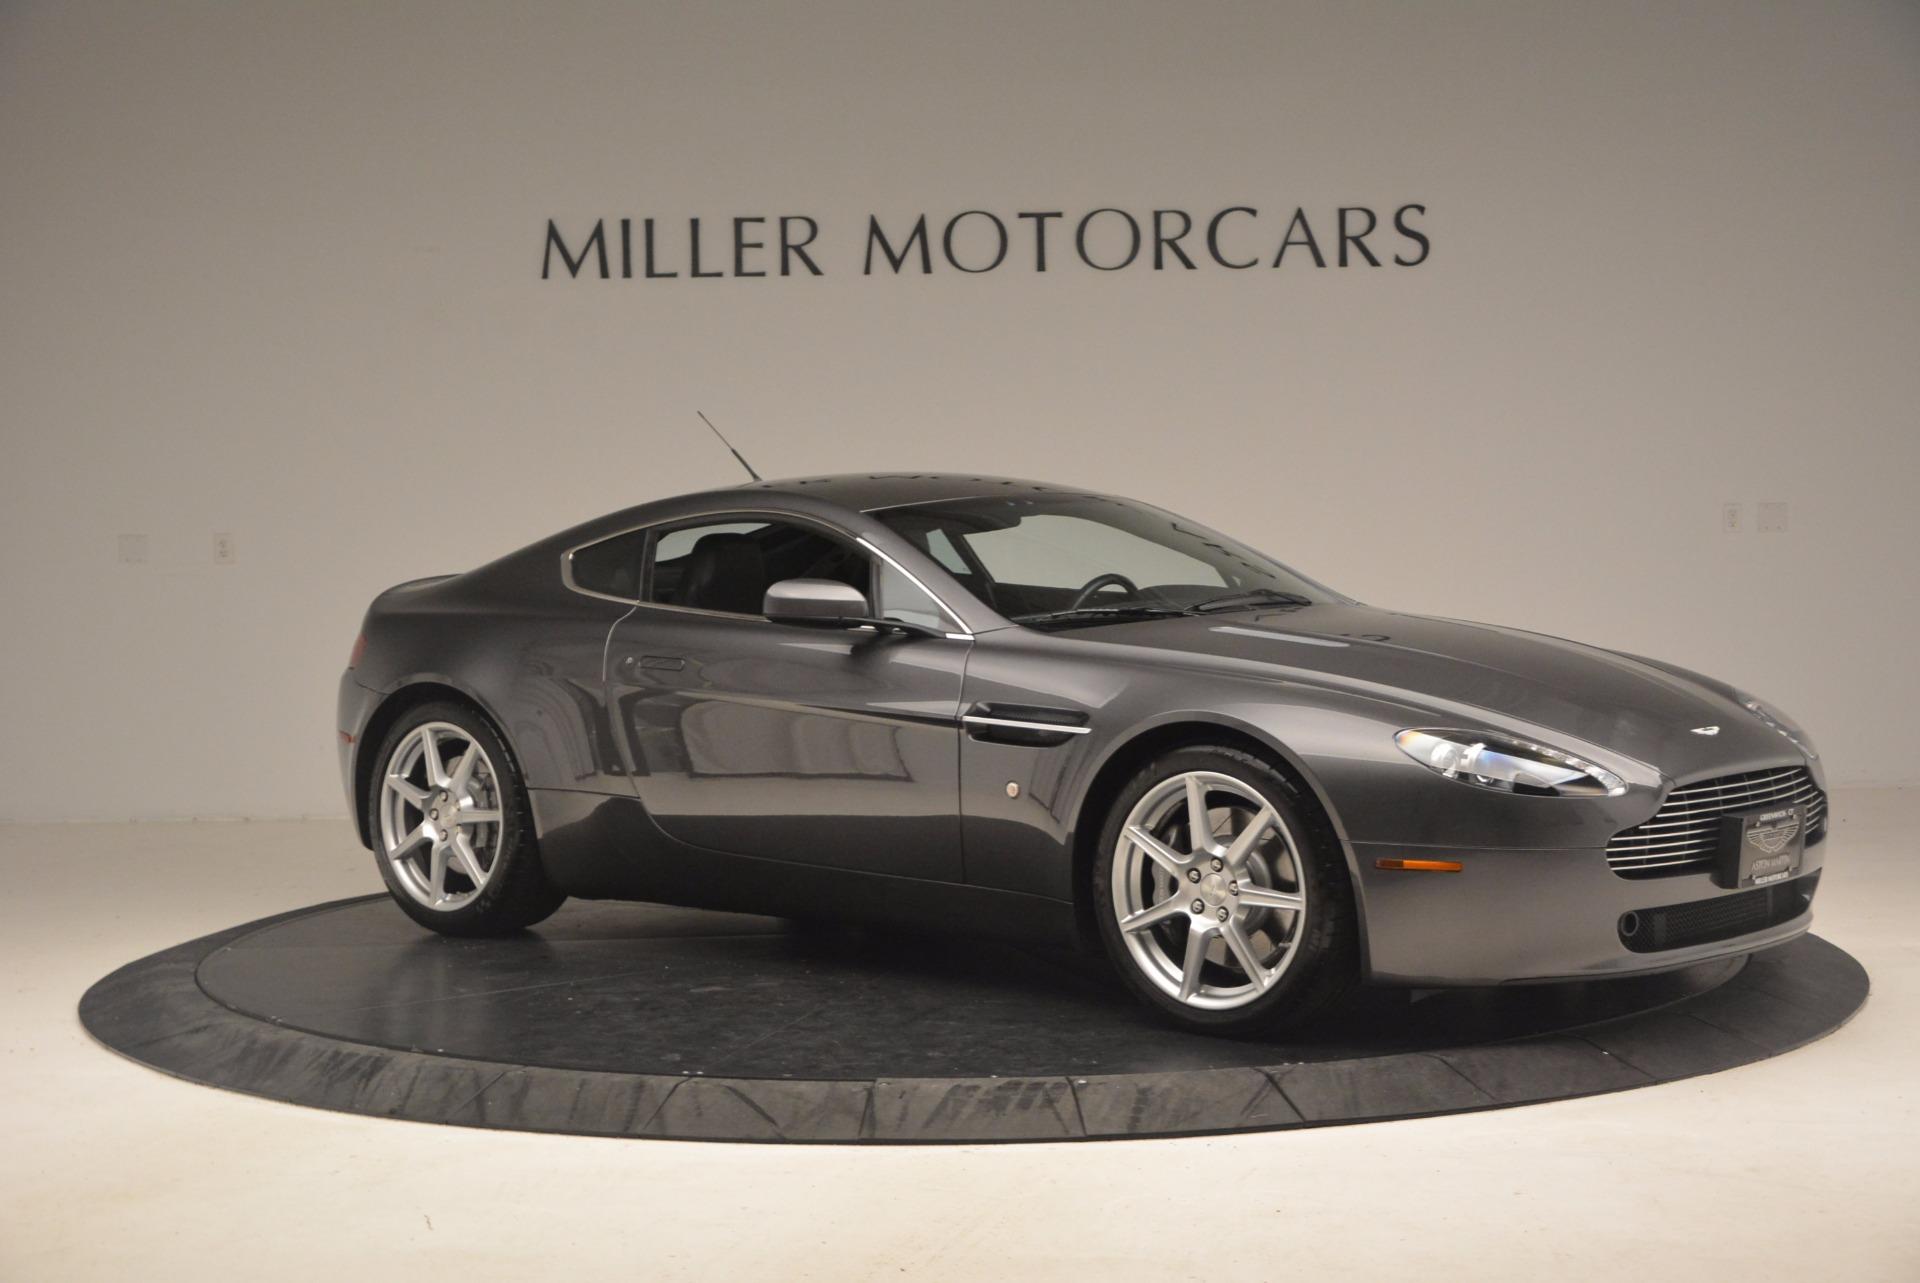 Used 2006 Aston Martin V8 Vantage Coupe  For Sale In Westport, CT 1180_p10